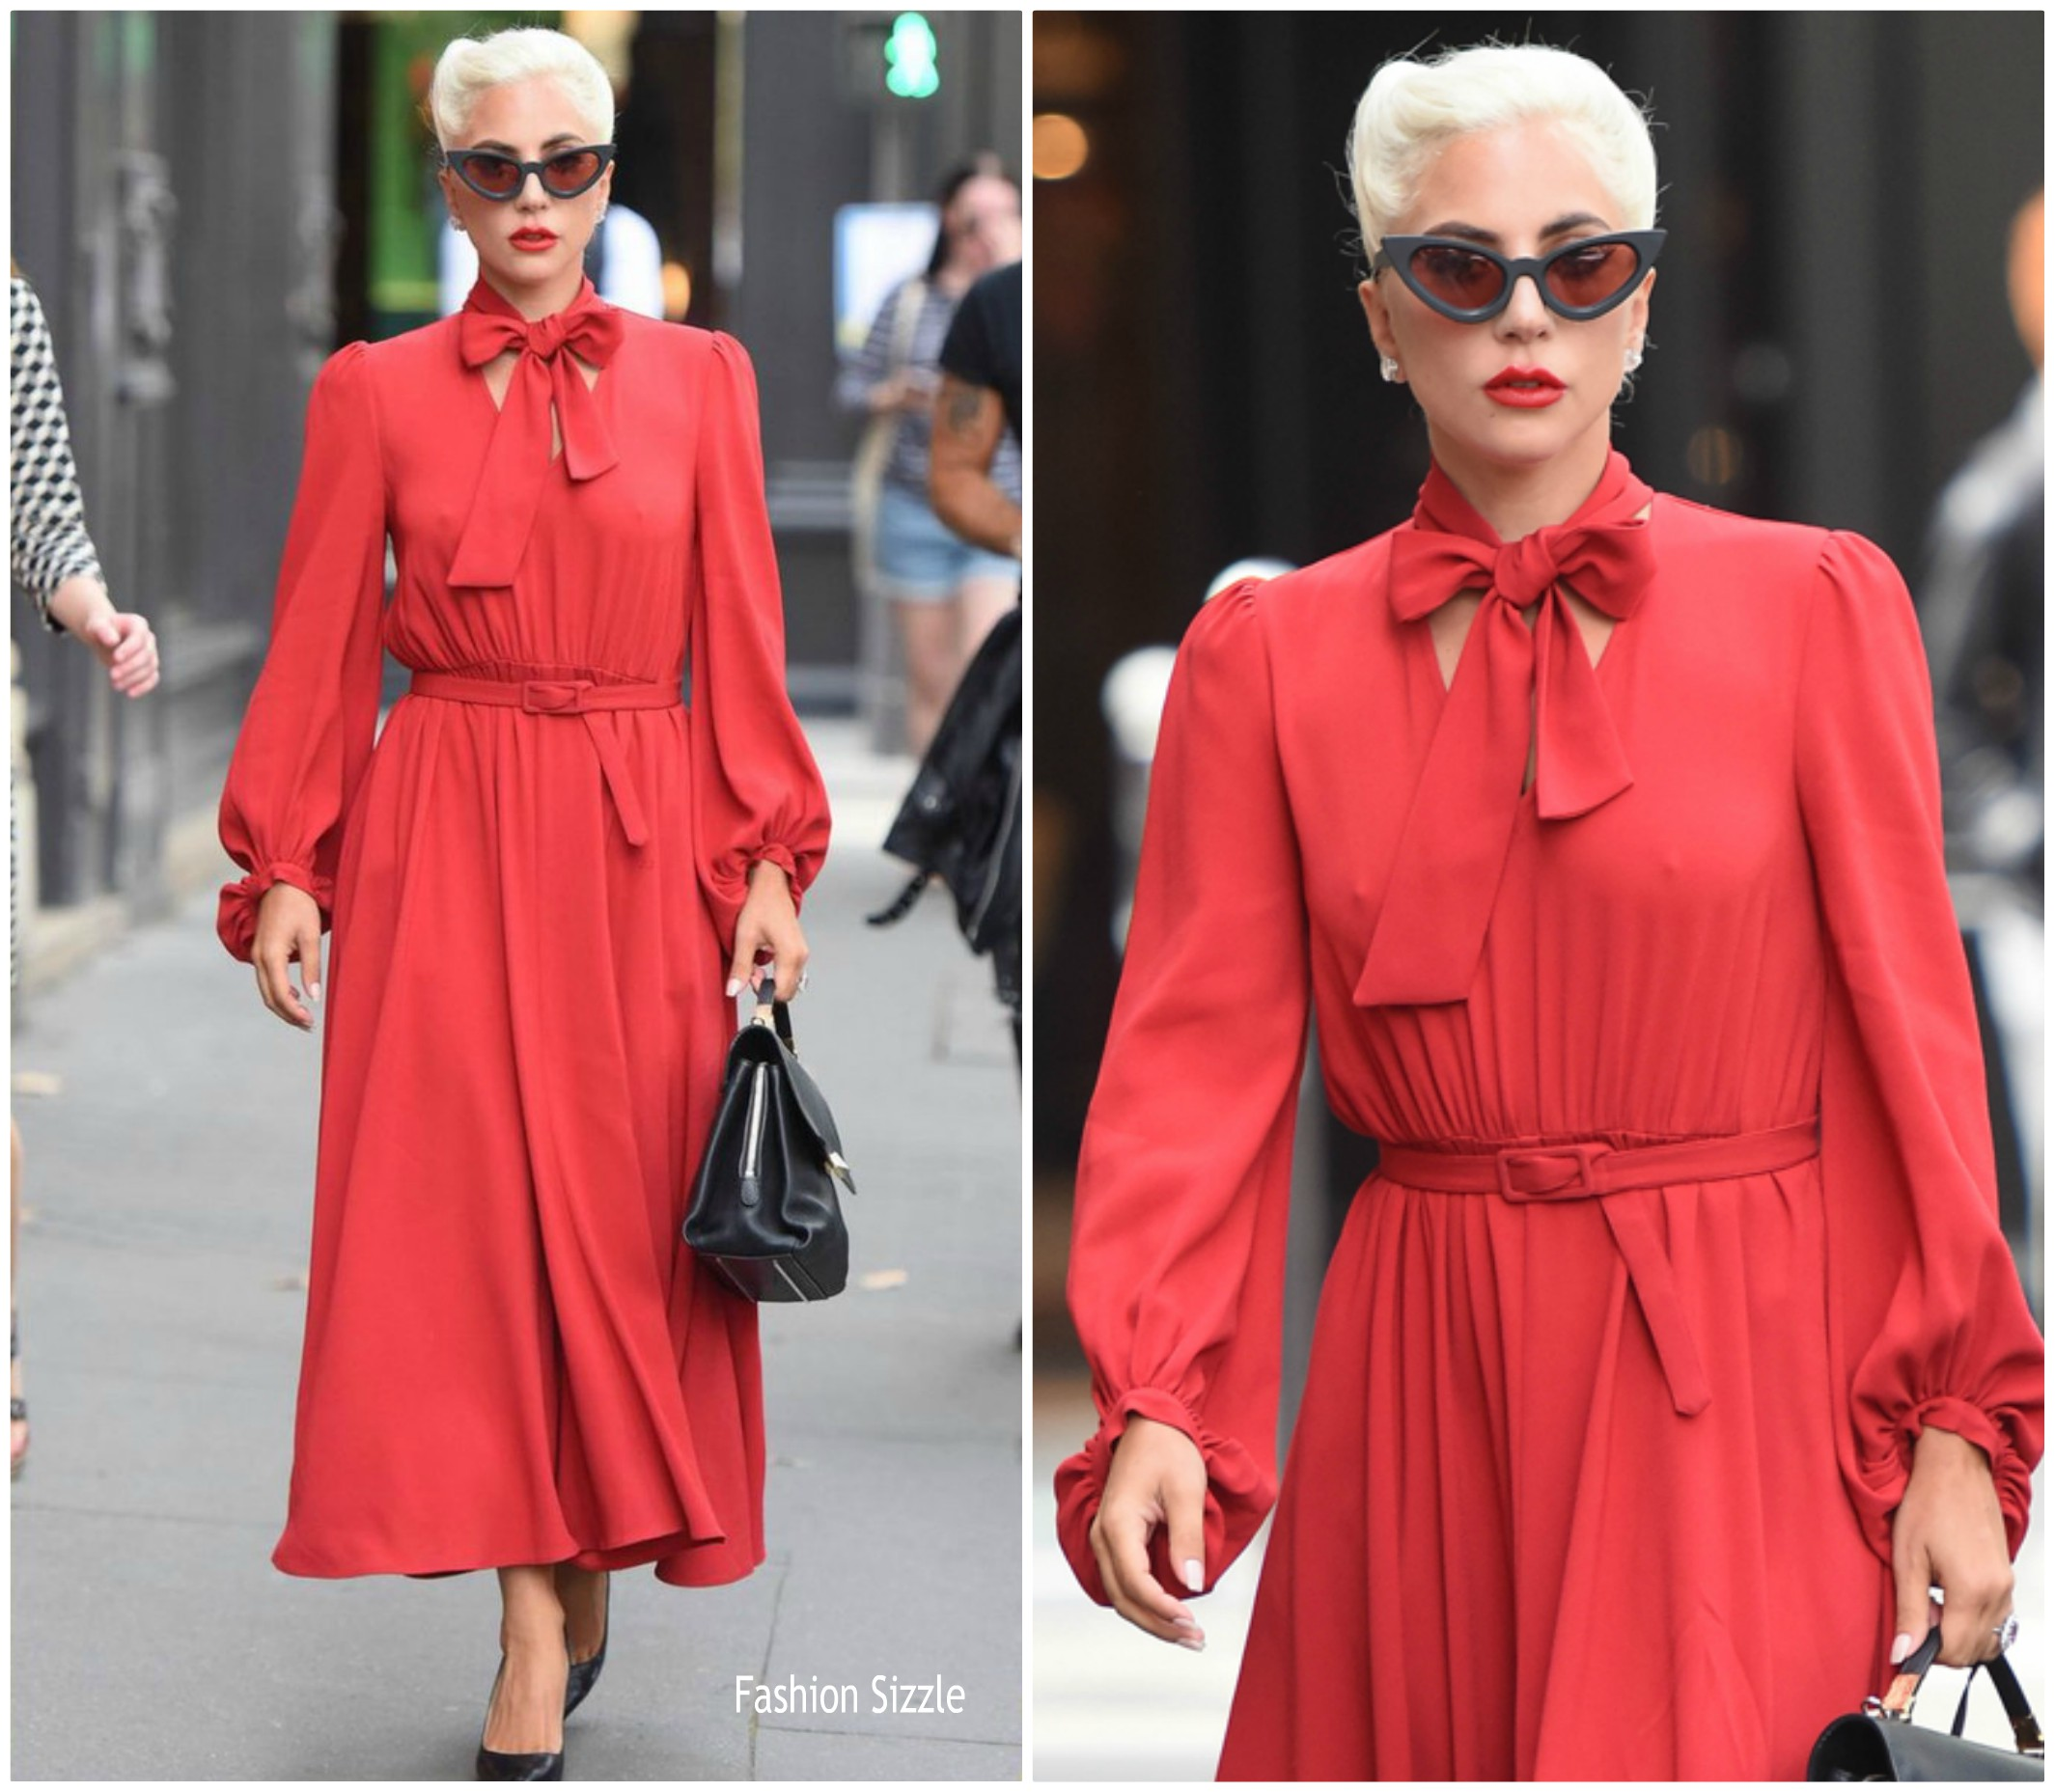 lady-gaga-in-co-out-in-paris